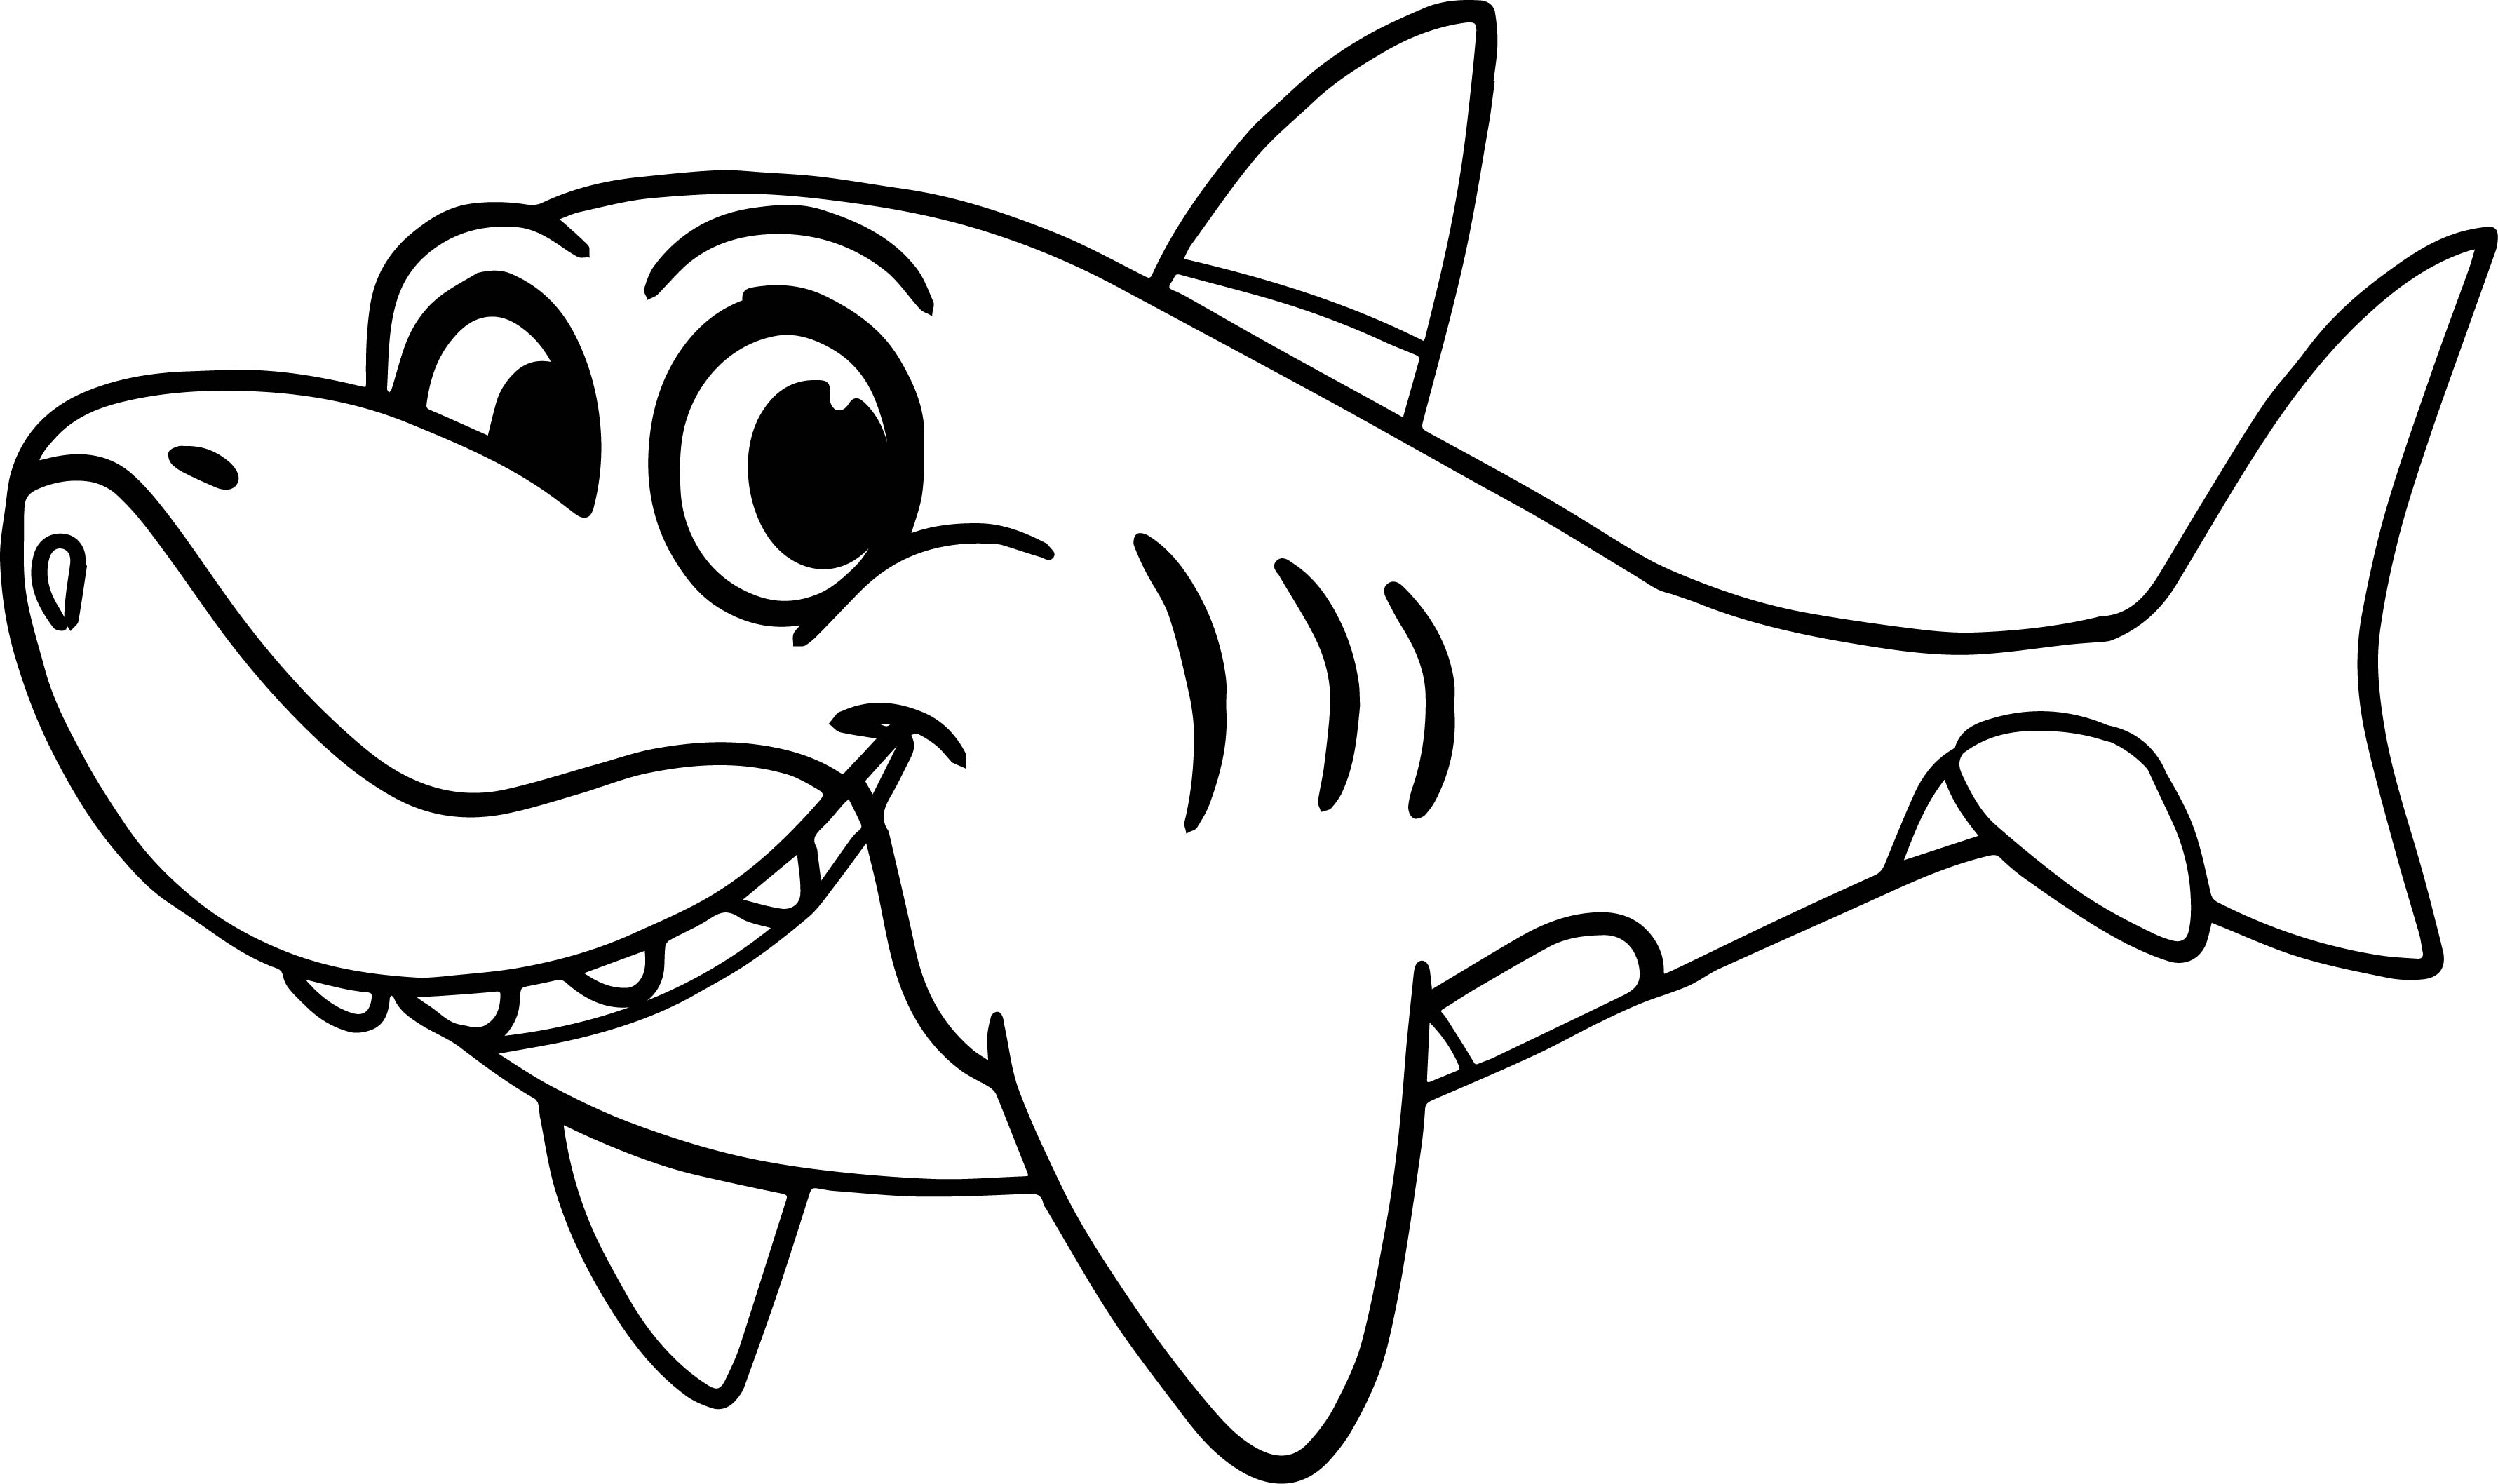 3562x2116 Coloring Pages Impressive Shark Images To Color Morphle Cartoon